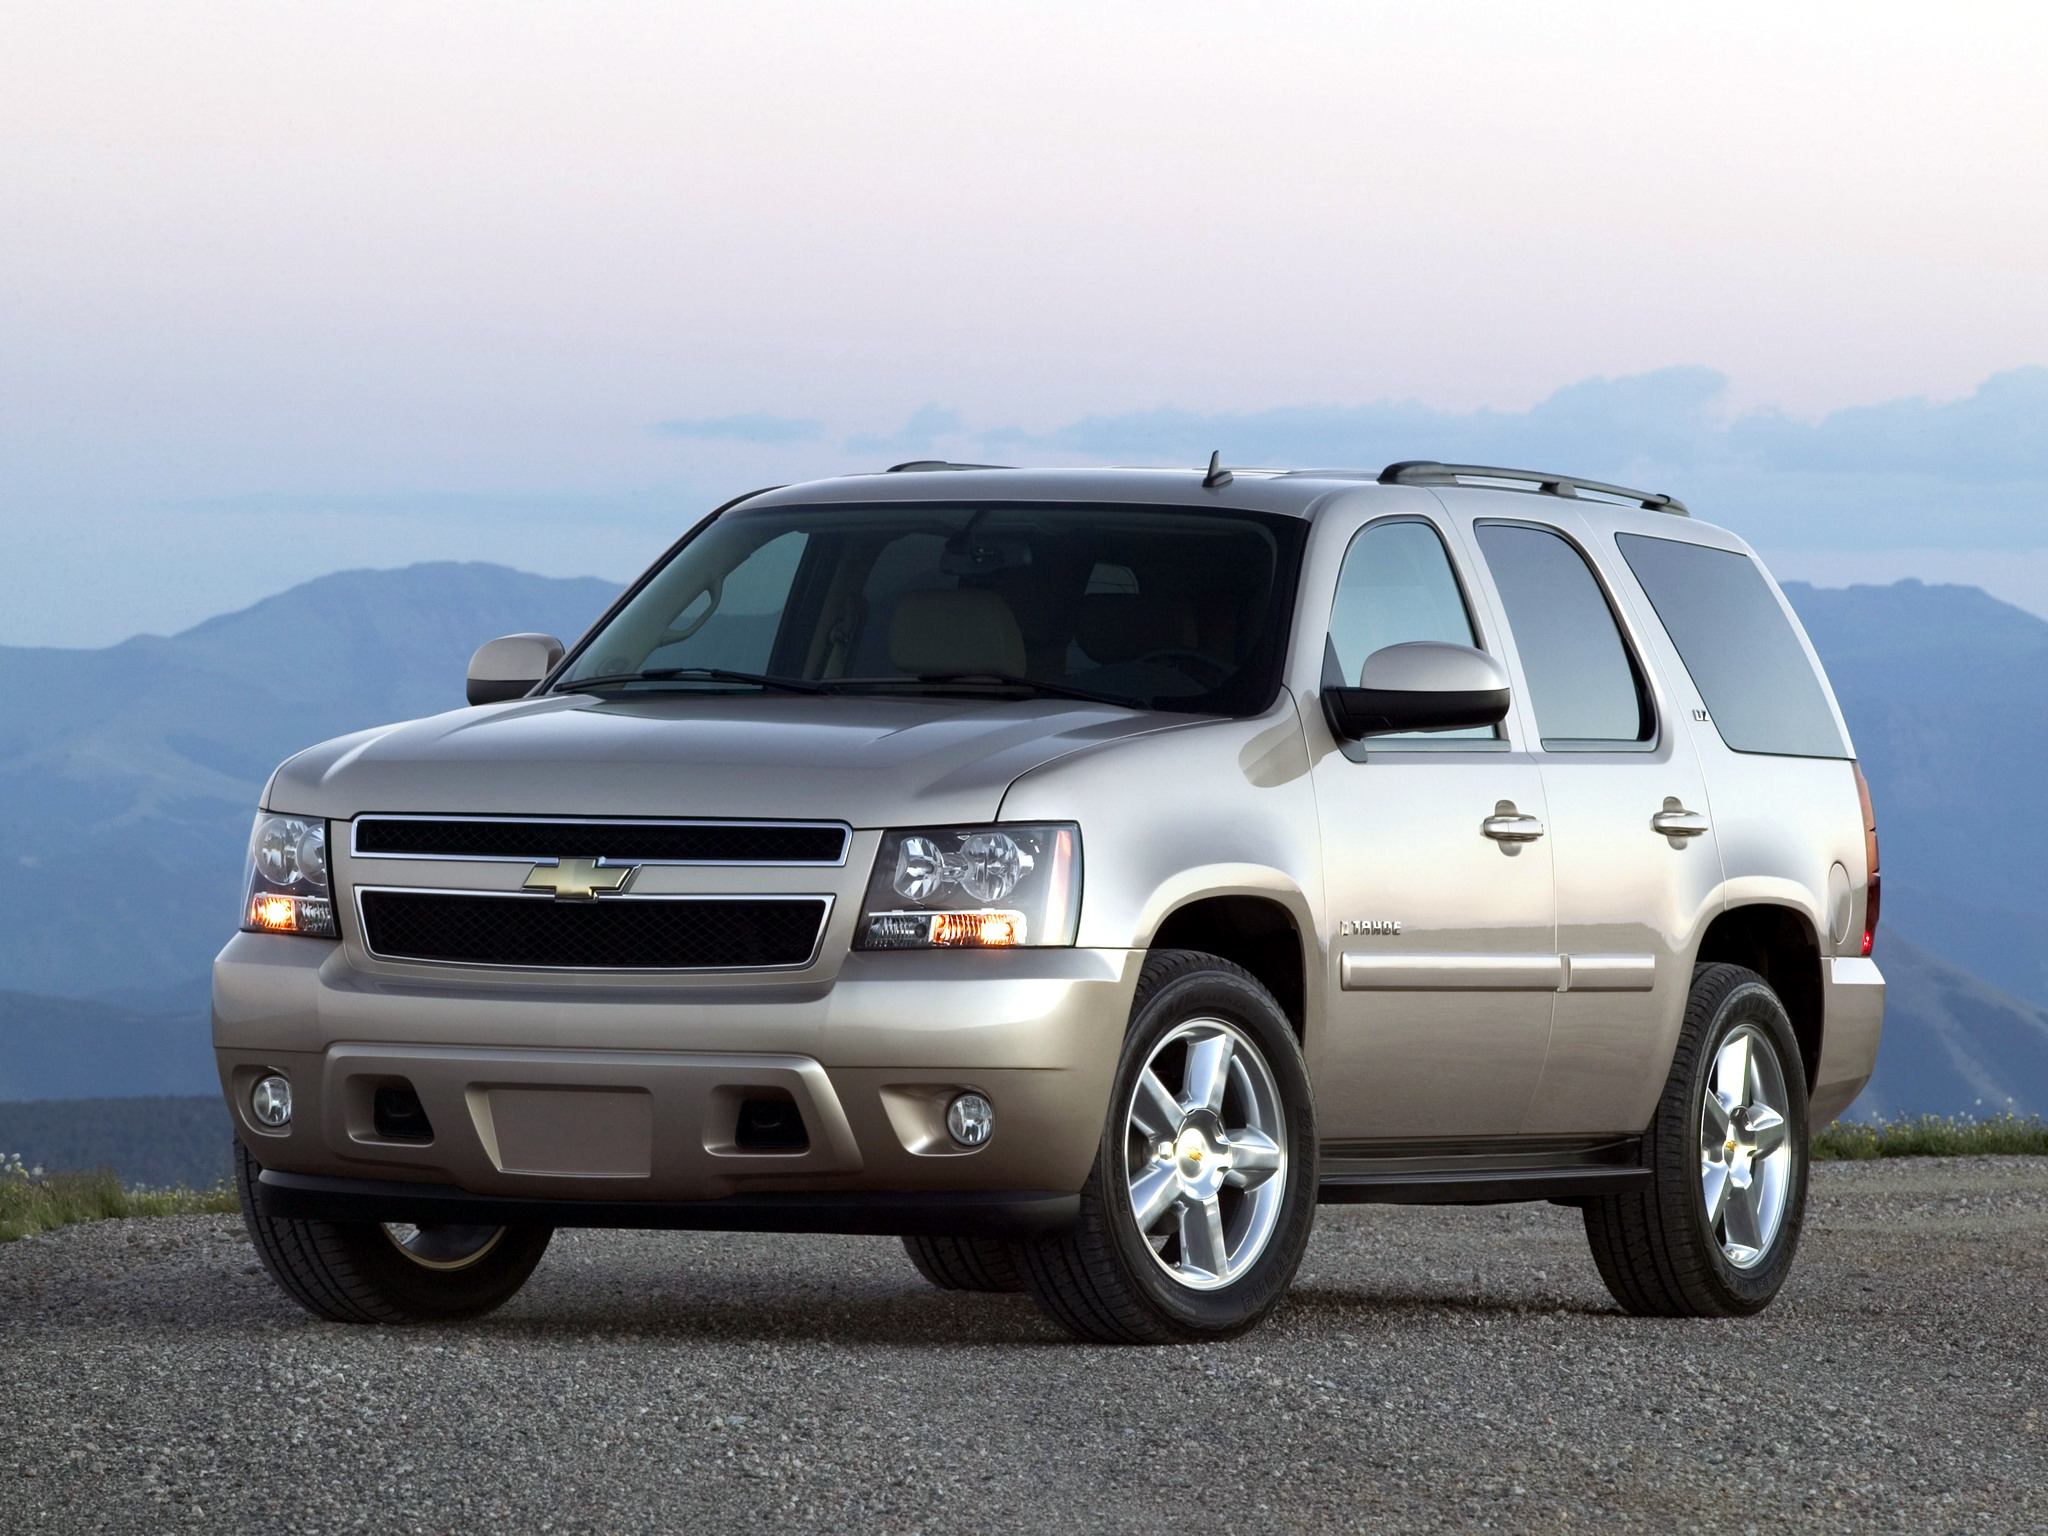 CHEVROLET TAHOE (GMT900) / Тахо